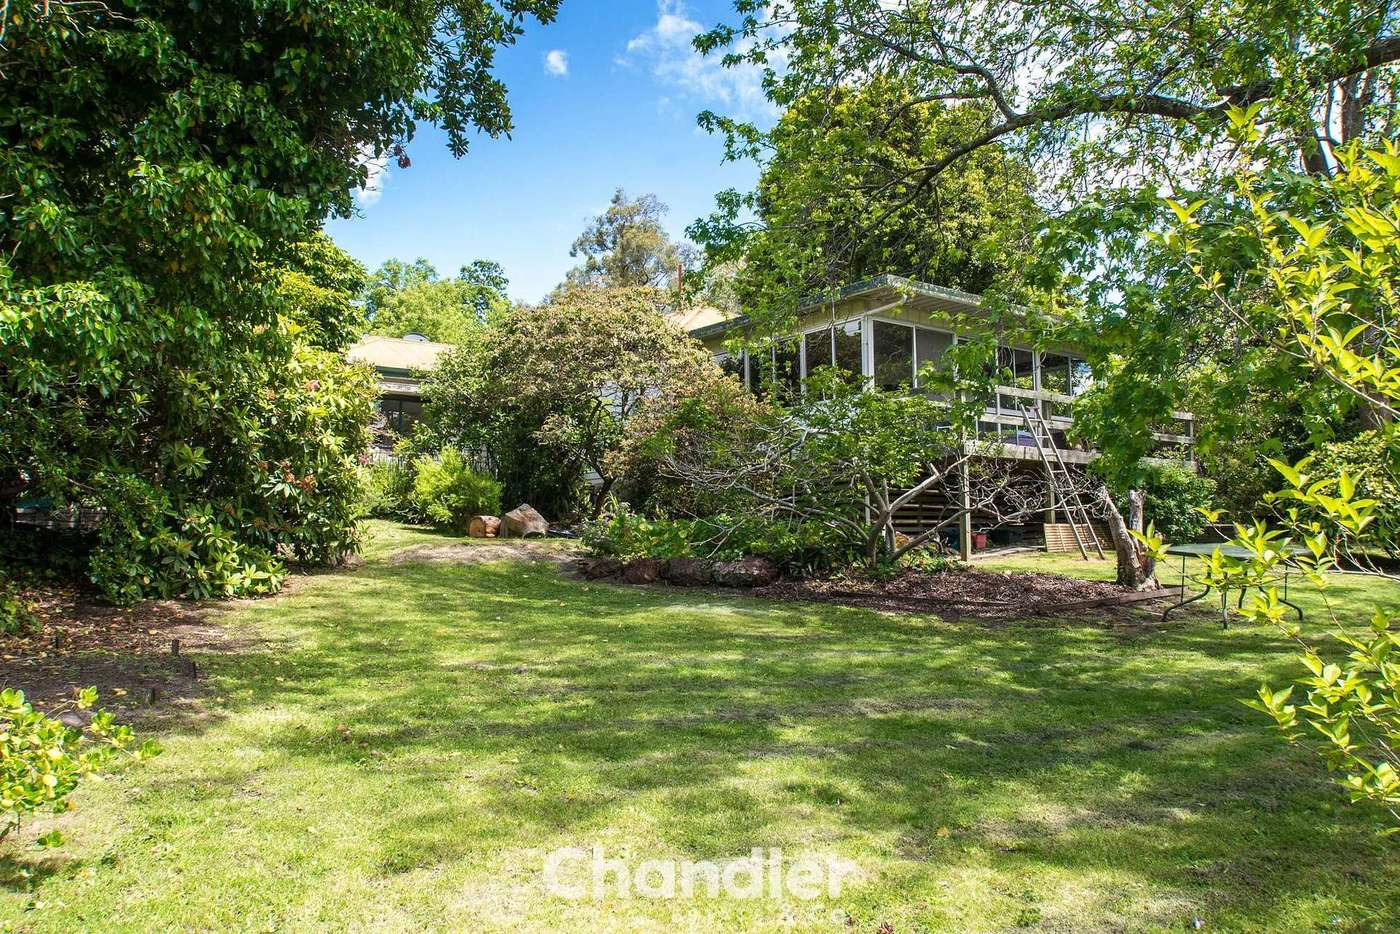 Main view of Homely house listing, 3 McLaren Street, Upwey VIC 3158